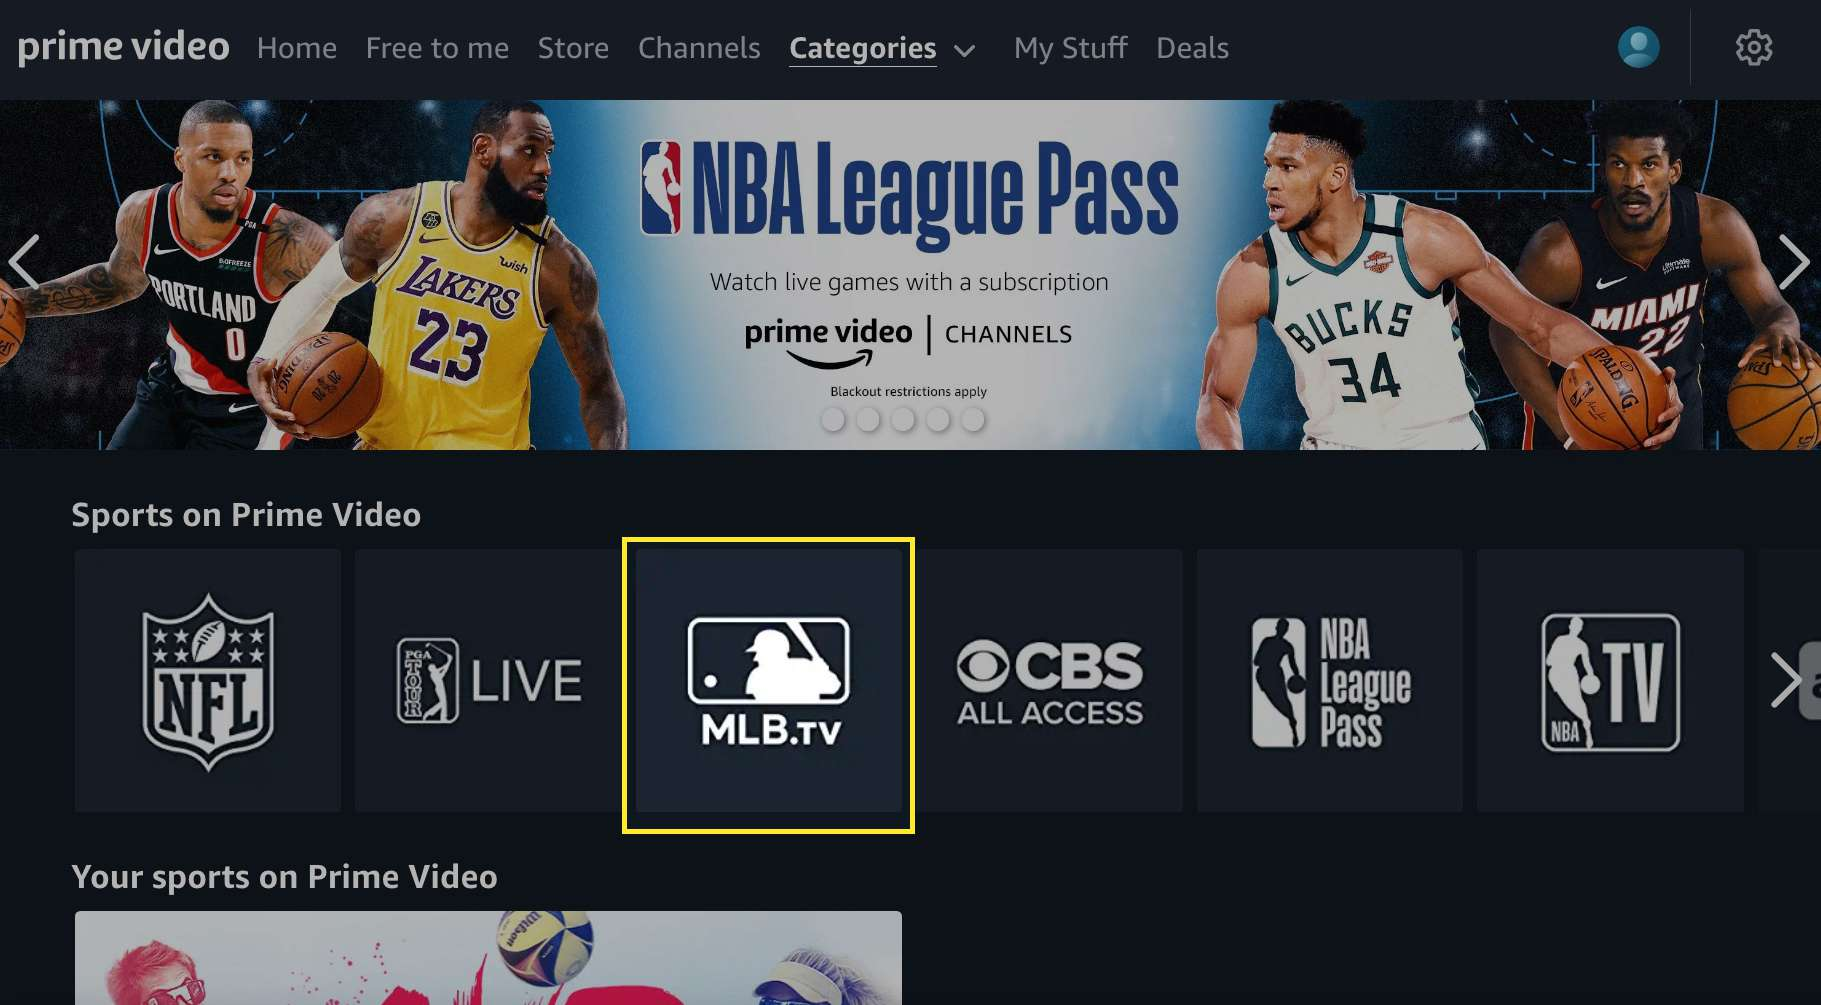 Amazon Prime Video sports channels with MLB.TV highlighted